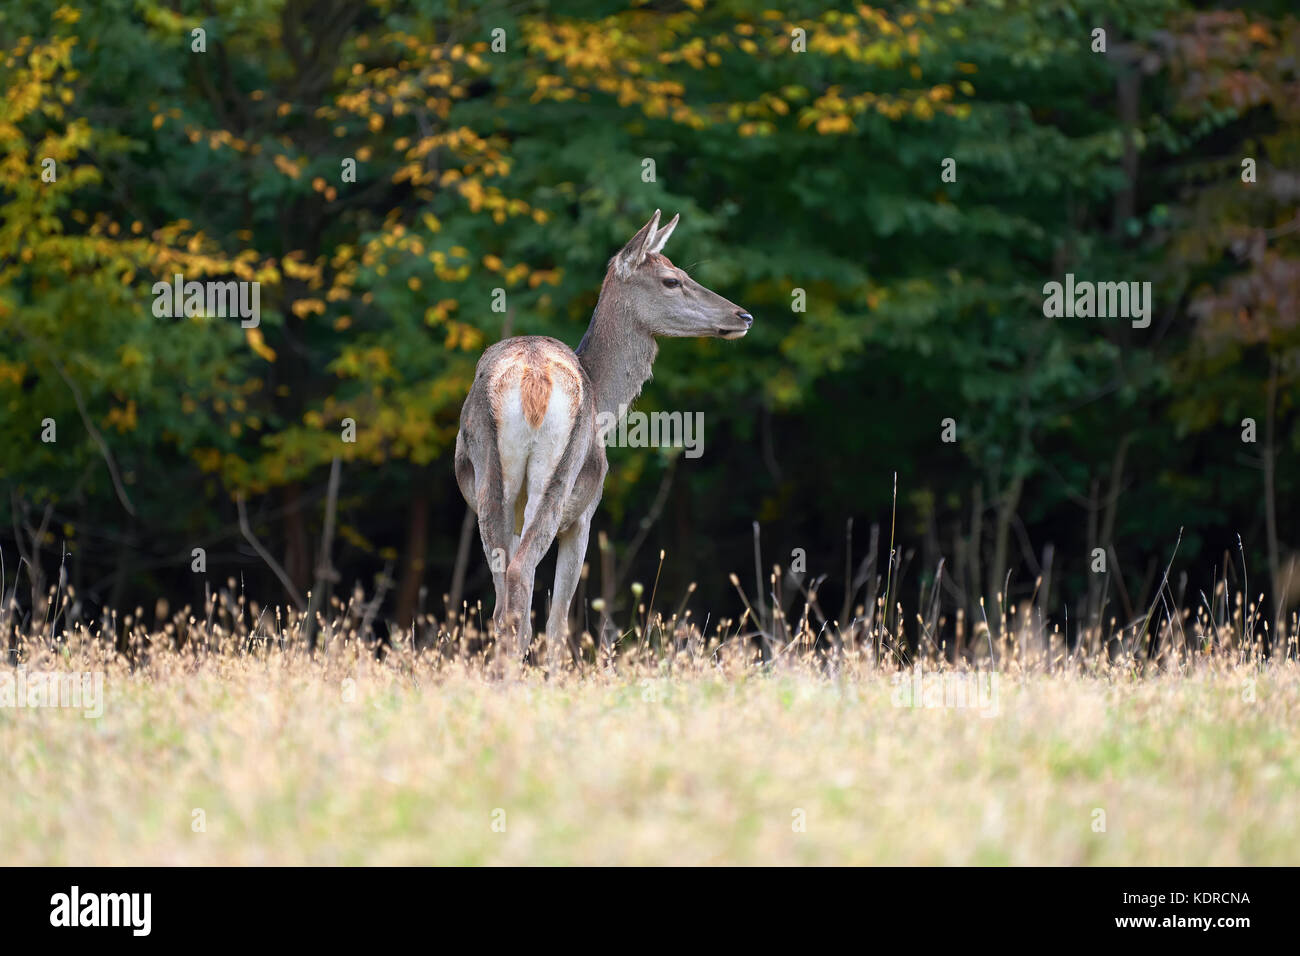 Female Red deer stag in the natural environment - Stock Image